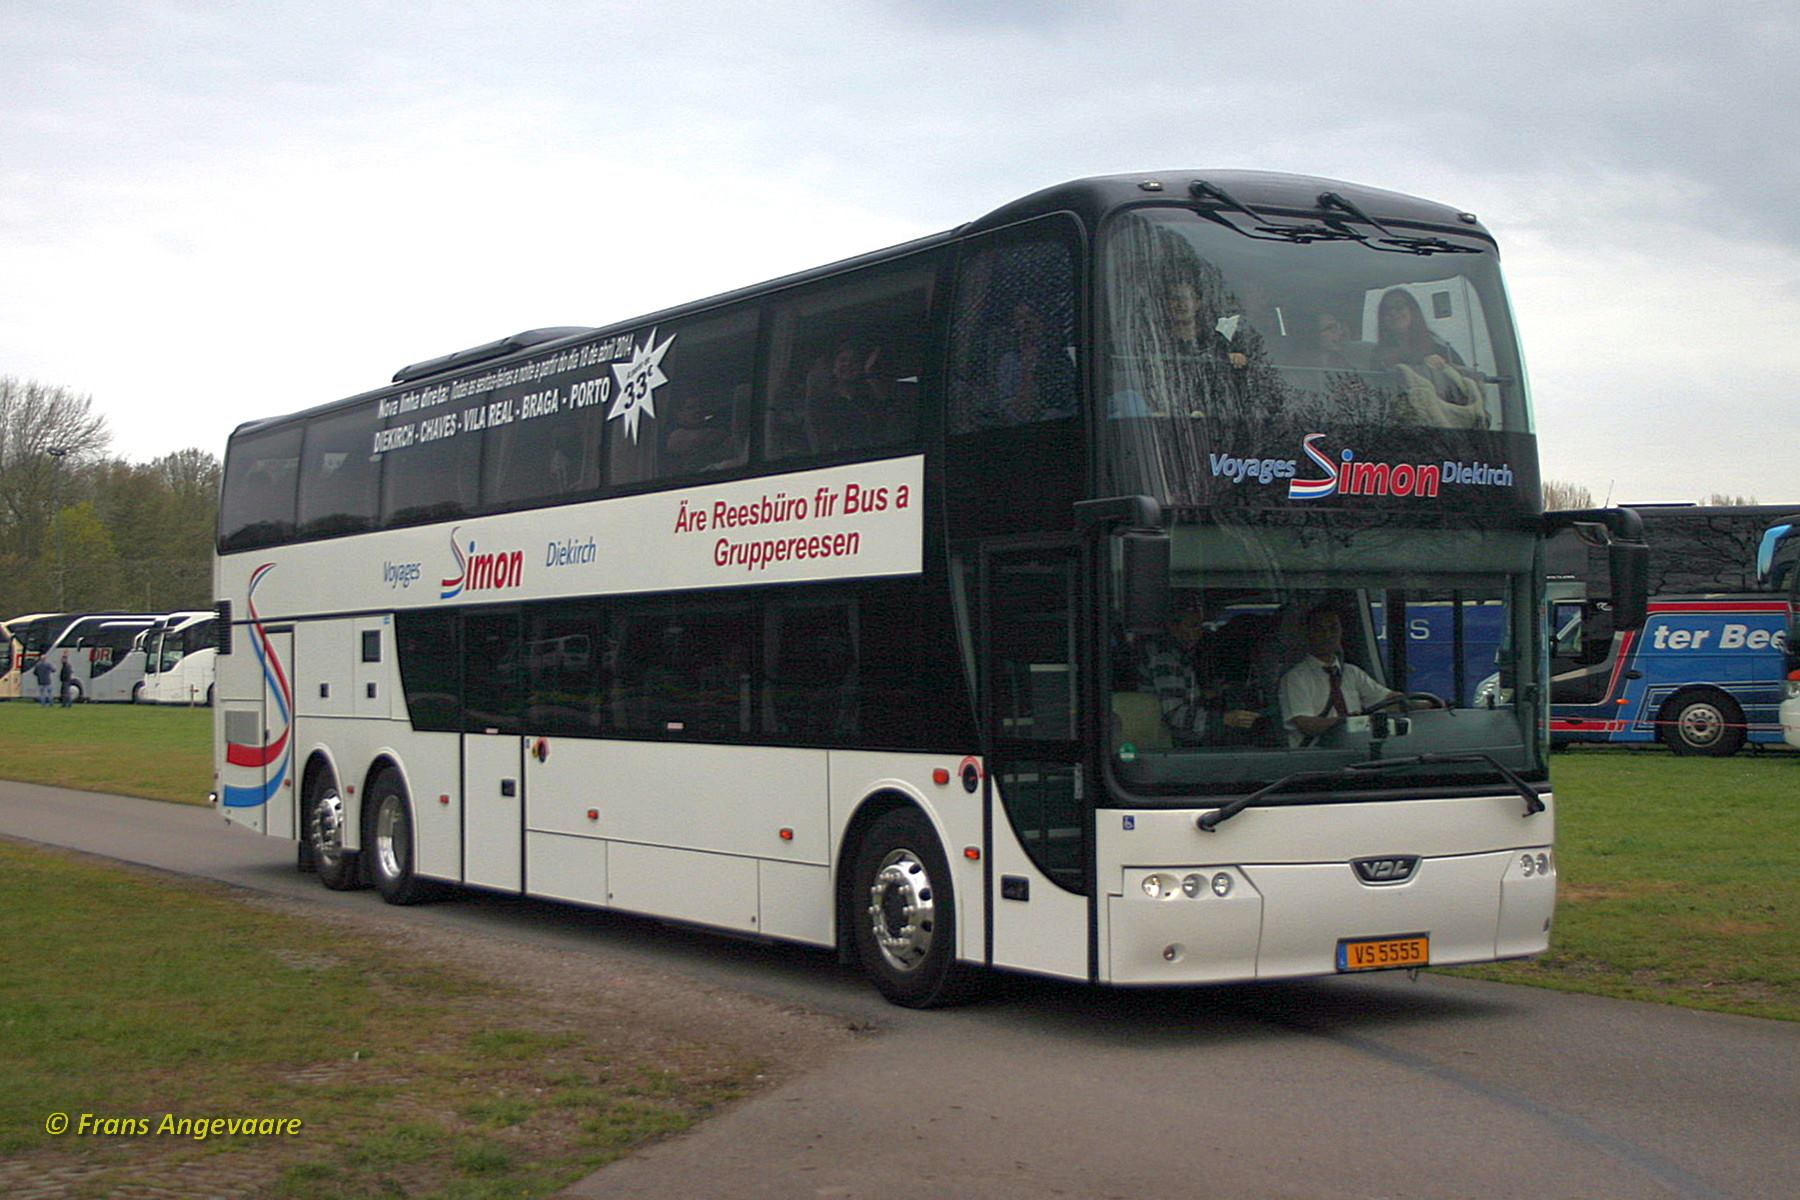 Keukenhof-29-04-2015--Voyages-Simon--Ingeldorf--L--VS-5555--VDL-Synergy-SDD141.510-nieuw-in-april-2014